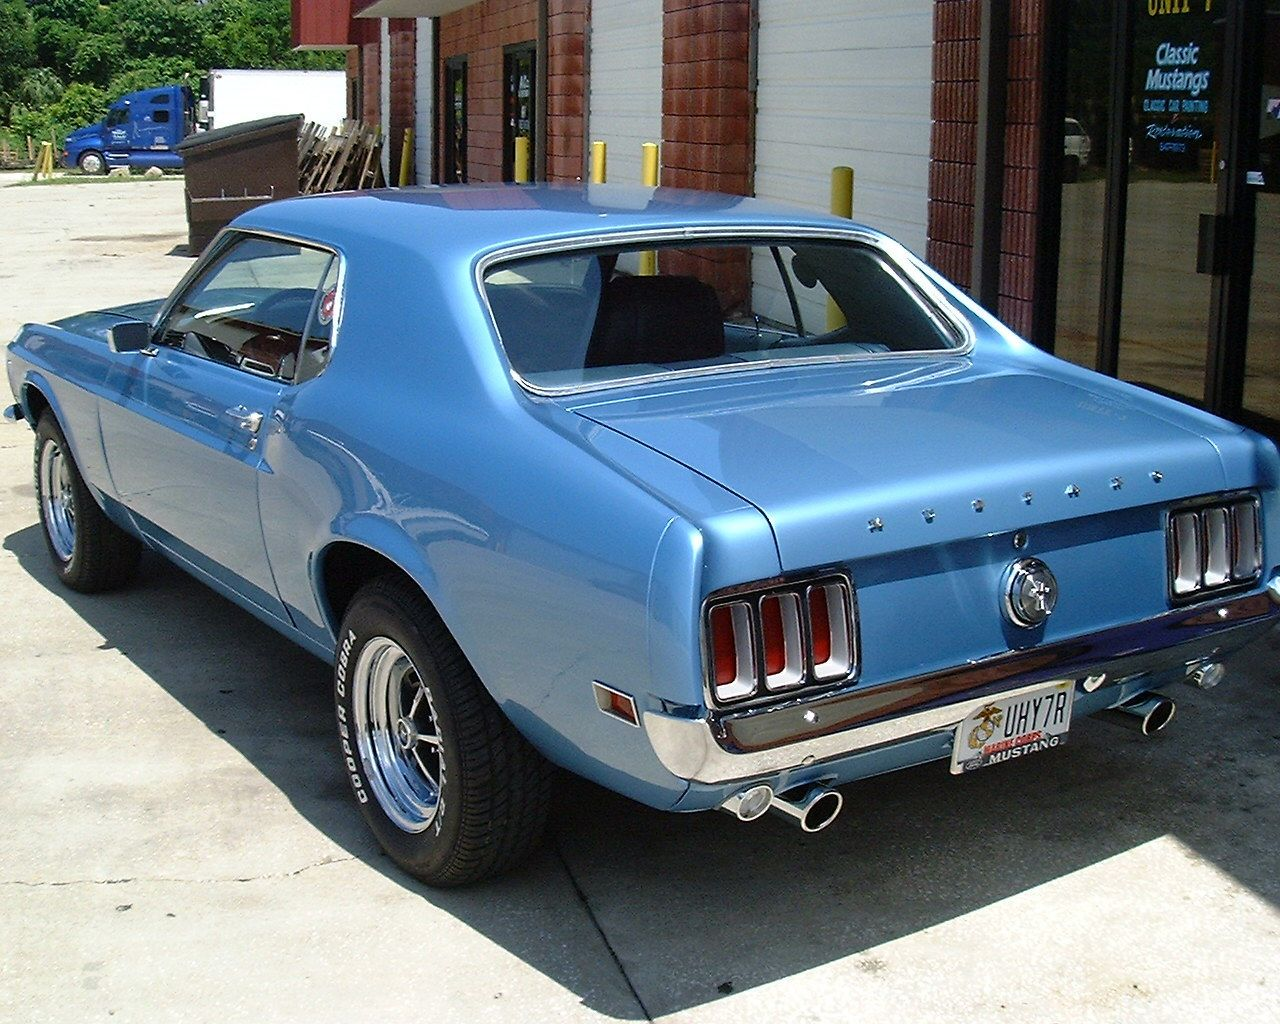 1970 Mustang Coupe 1970 Mustang Coupe Blue Mustang Ford Mustang Shelby Cobra Ford Mustang 1969